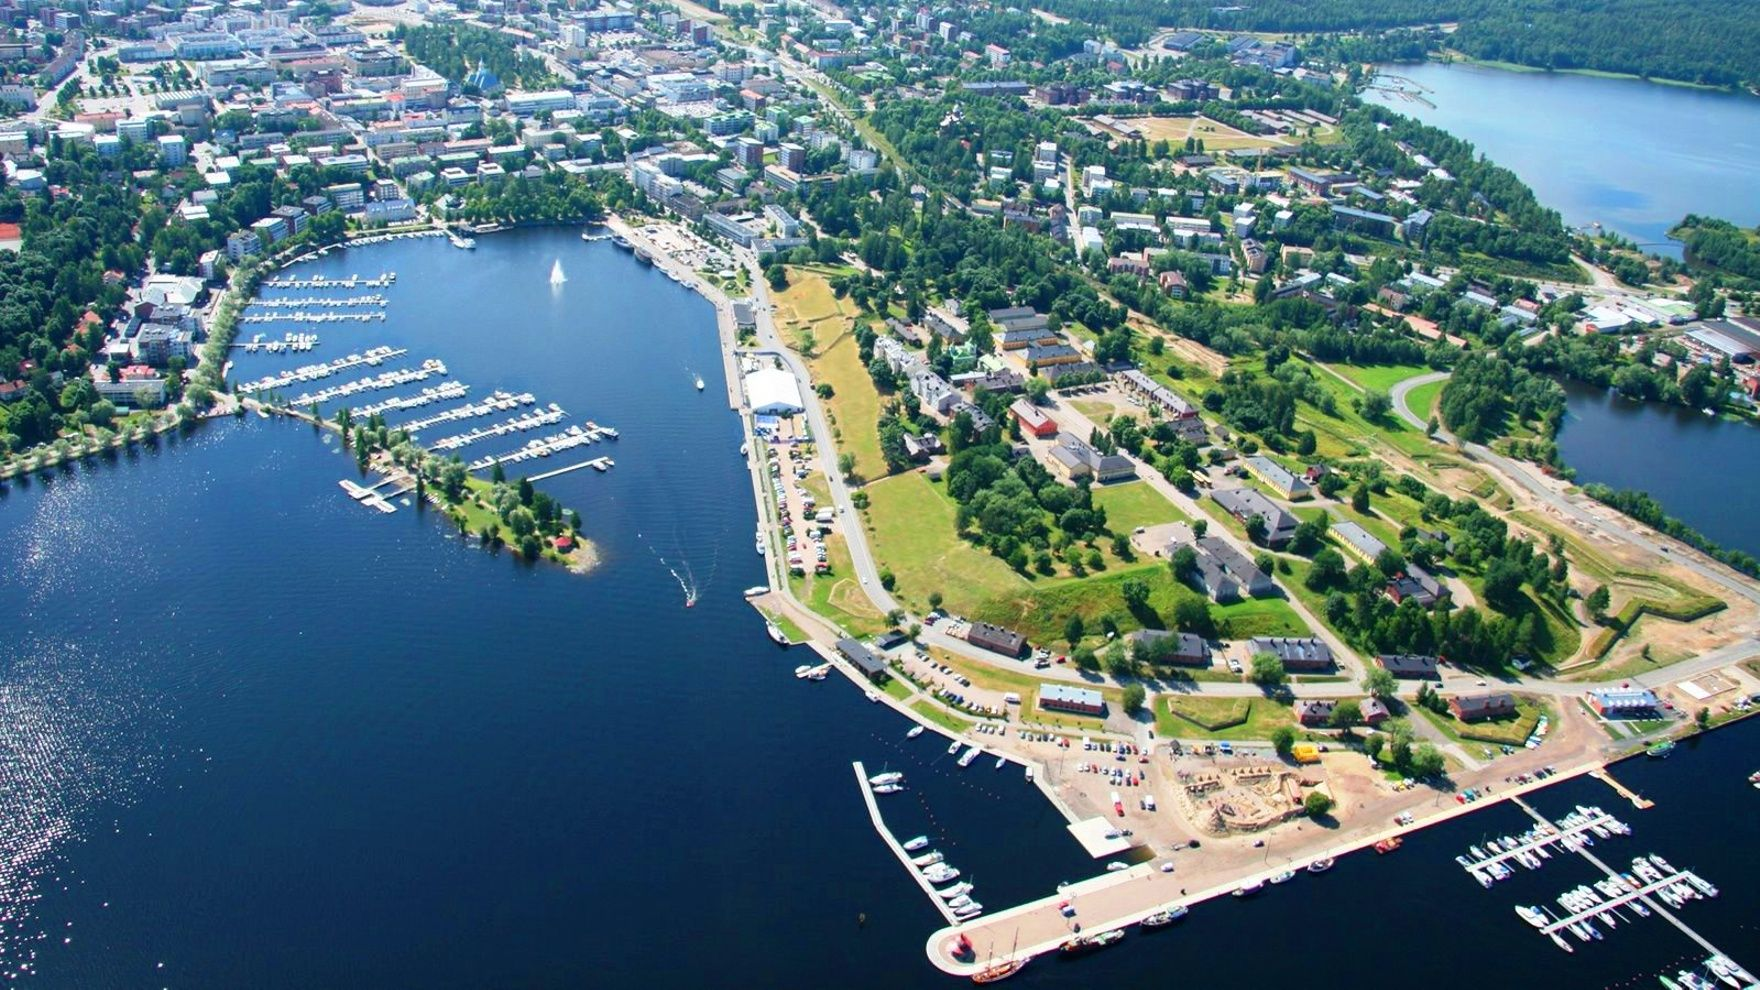 Mile building: Saimaa lakes